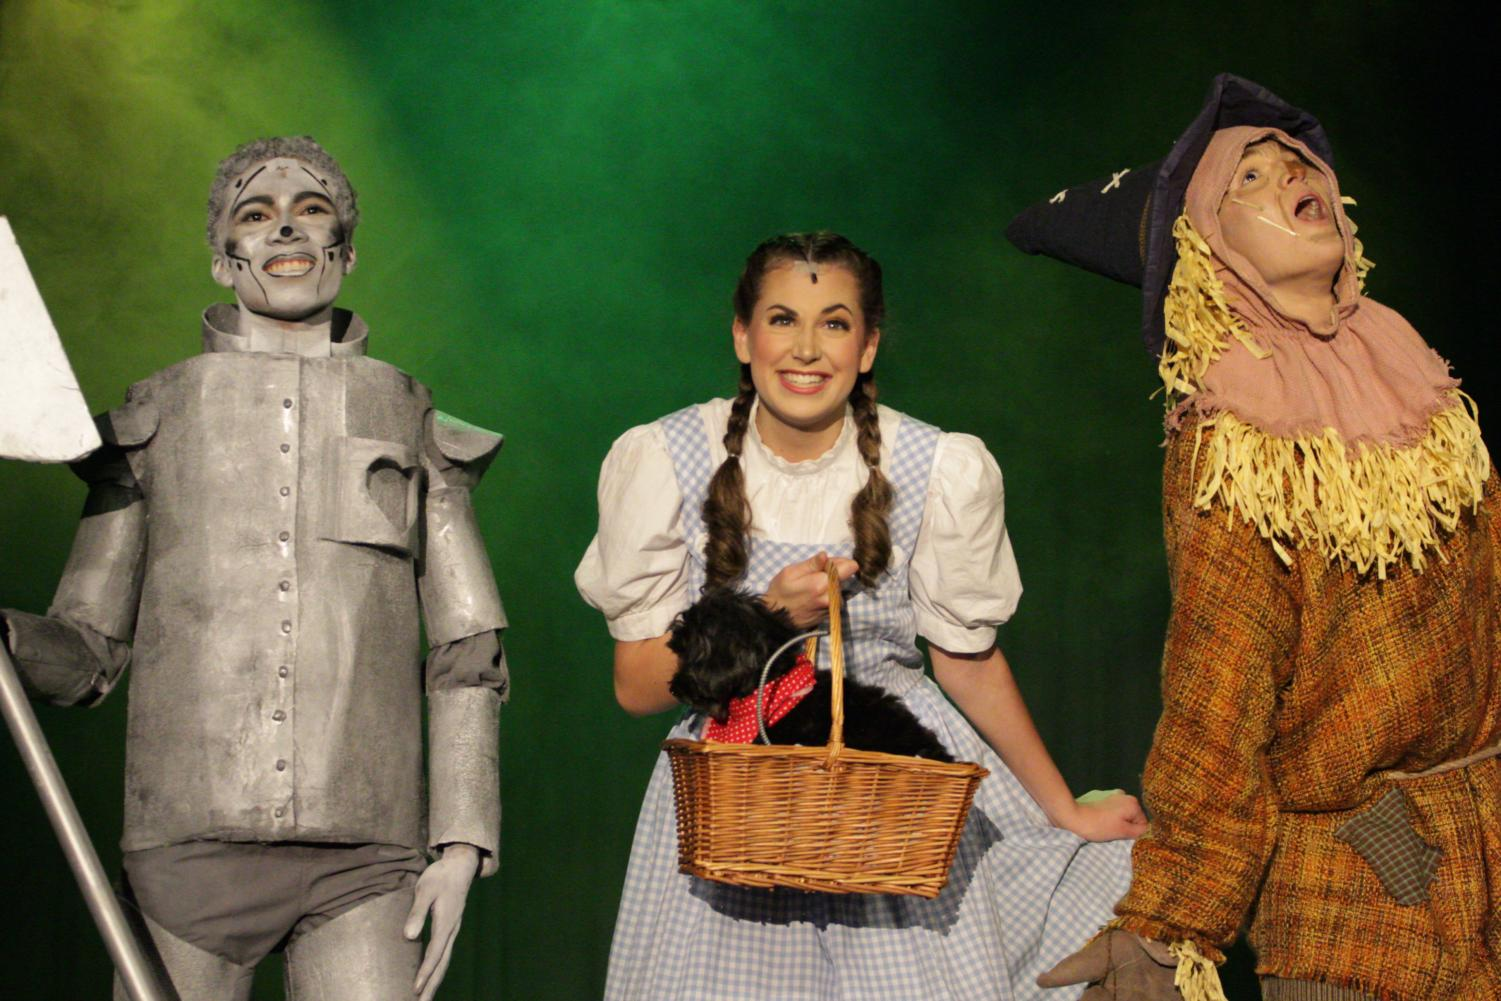 Seniors Douglass Morris, Jo Dearman, and Lou Conti perform as Tinman, Dorothy, and Scarecrow, respectively.